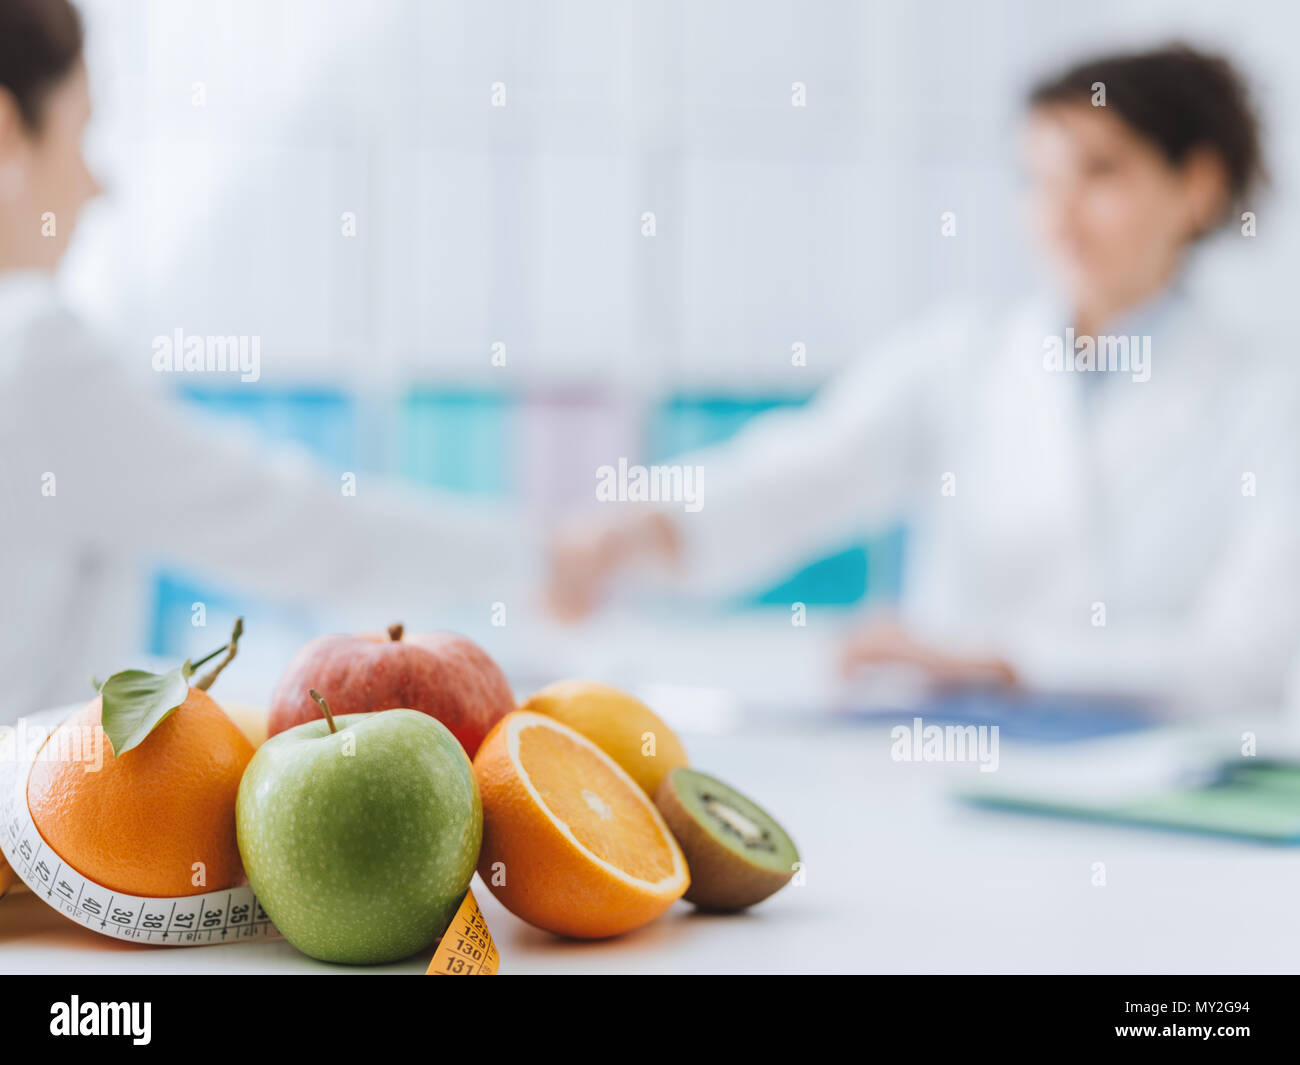 Professional nutritionist meeting a patient in the office and healthy fruits with tape measure on the foreground: healthy eating and diet concept - Stock Image